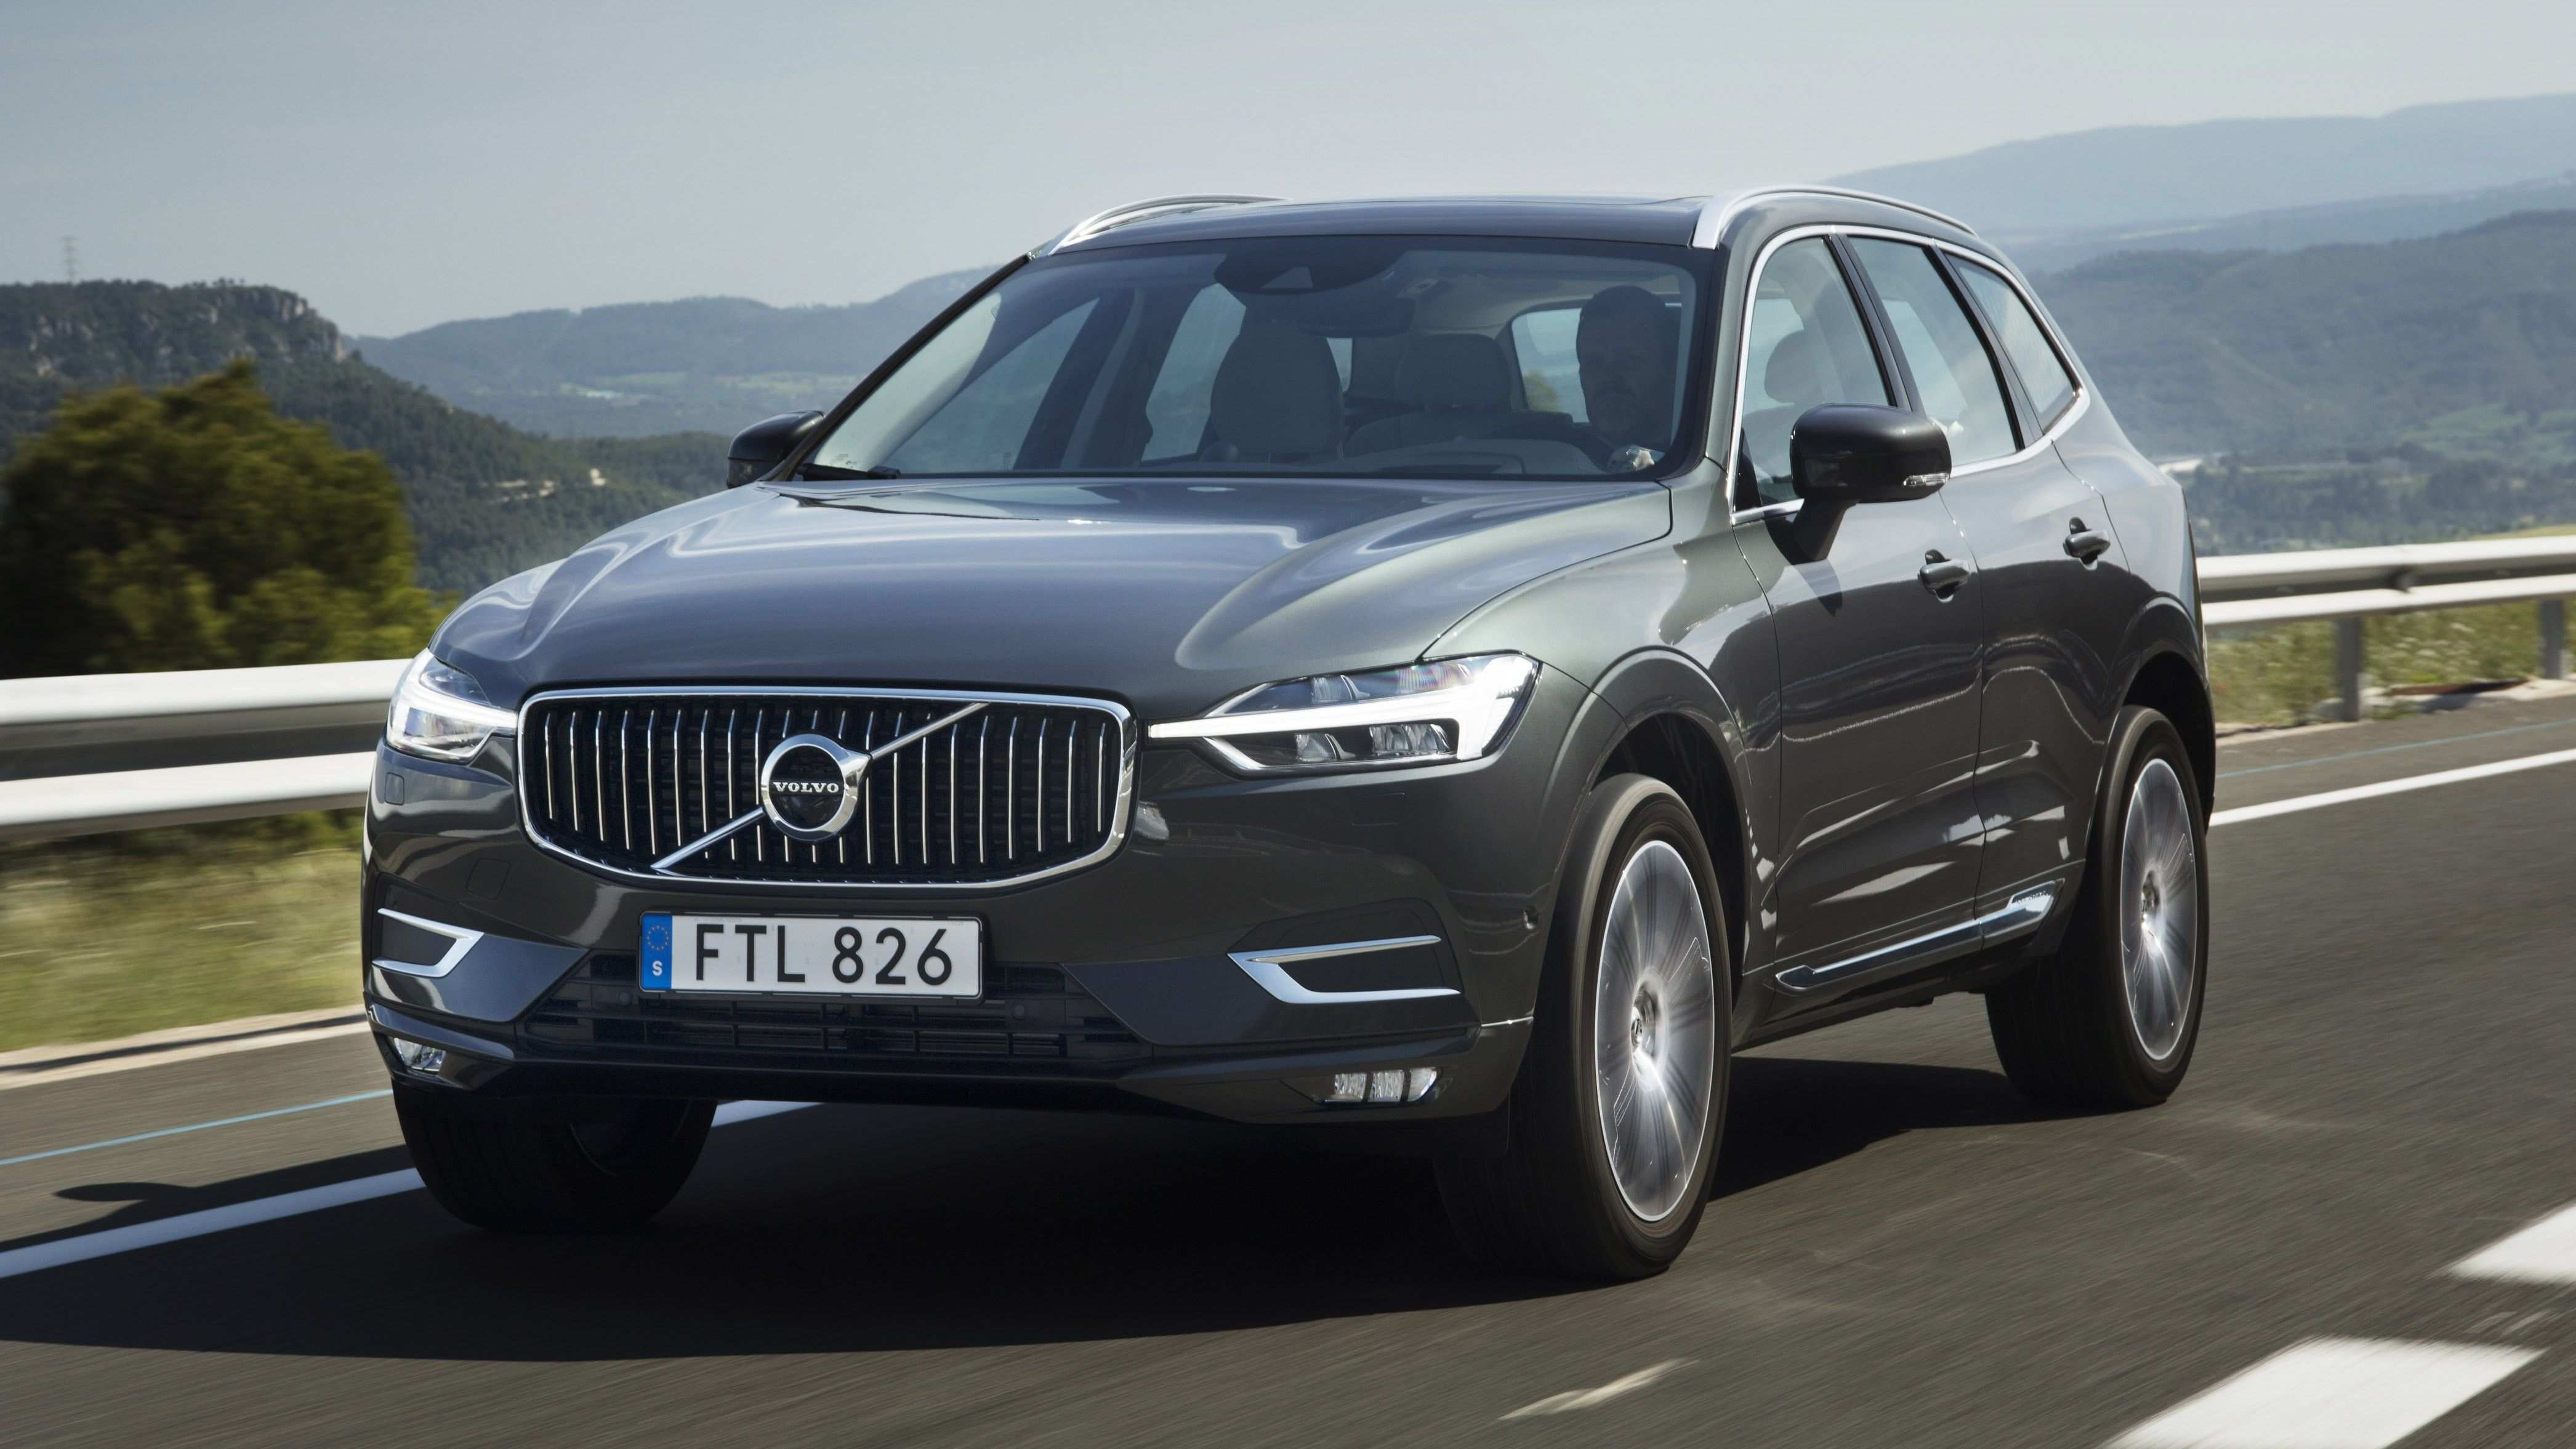 91 All New 2020 Volvo S60 Length Specs and Review with 2020 Volvo S60 Length